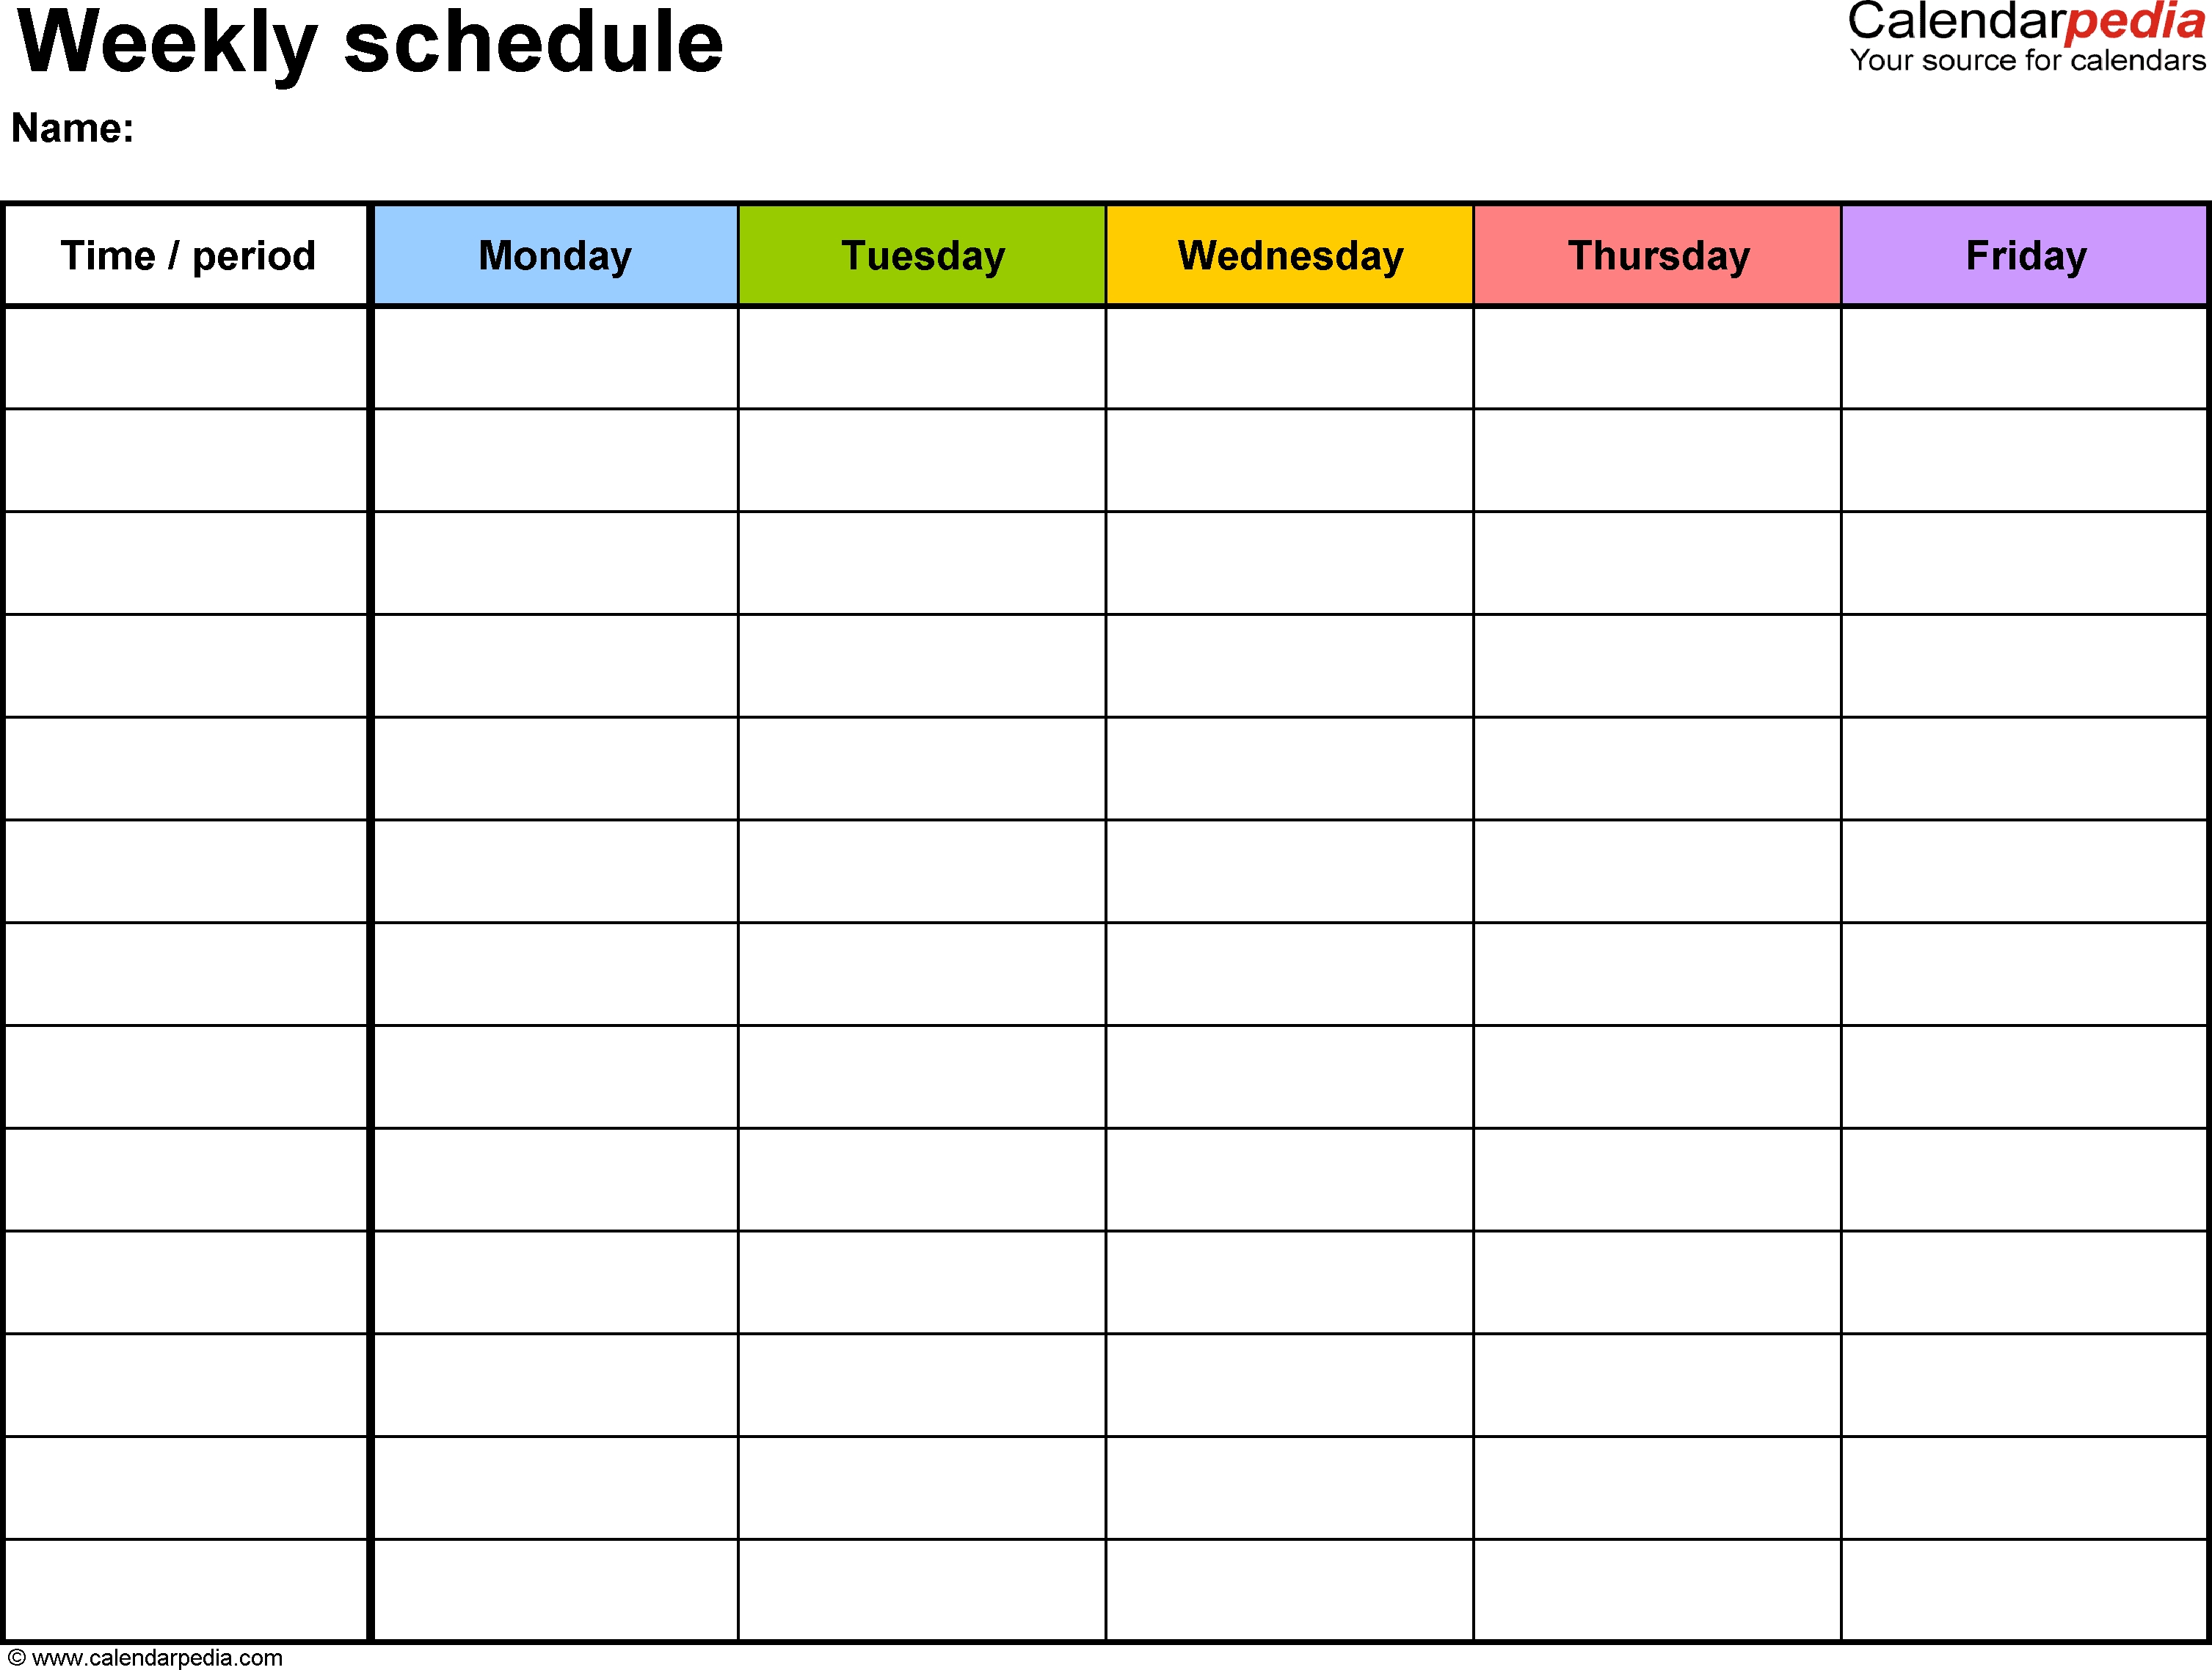 Free Weekly Schedule Templates For Word - 18 Templates throughout Monday To Friday Planner Template